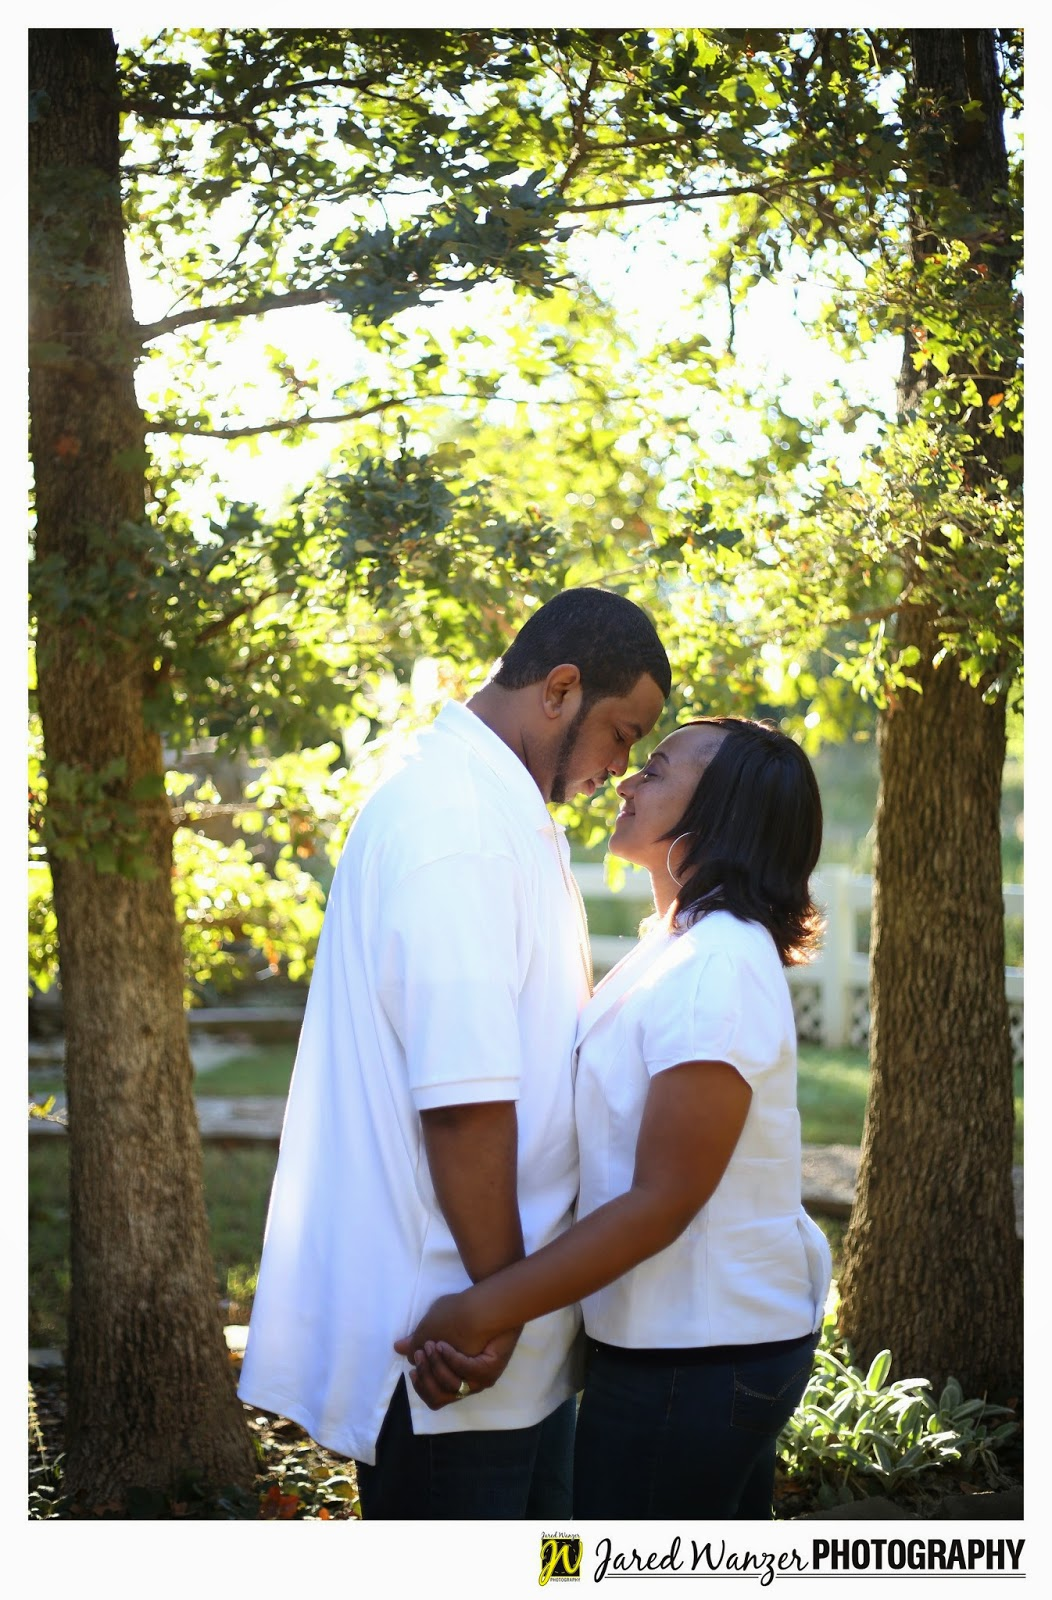 The Above Photos Are Taken In Gorgeous Gardens At I Cross My Heart Wedding Chapel